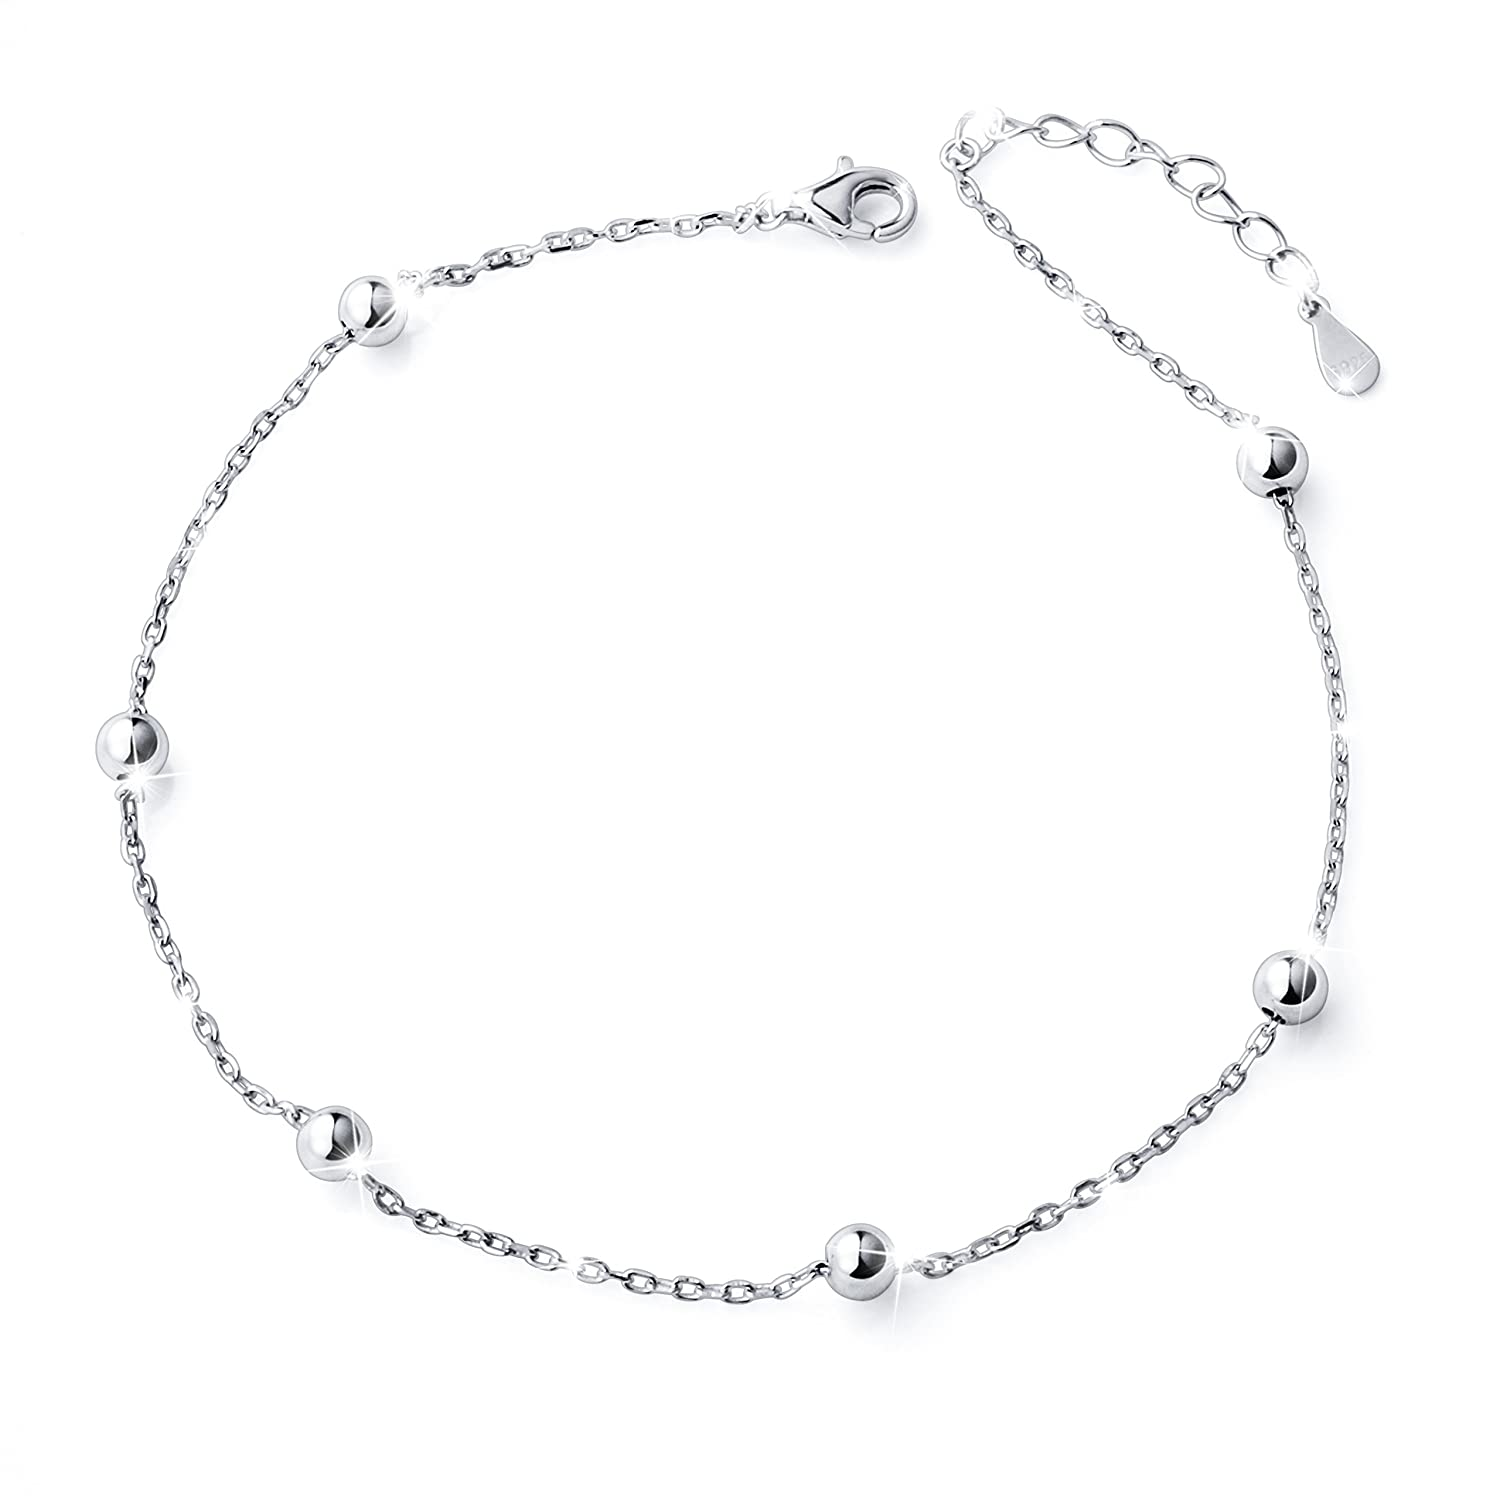 Jewelry & Watches Learned 925 Sterling Silver Double Chain 2 Stars Polished Beads Anklet Foot Jewellery